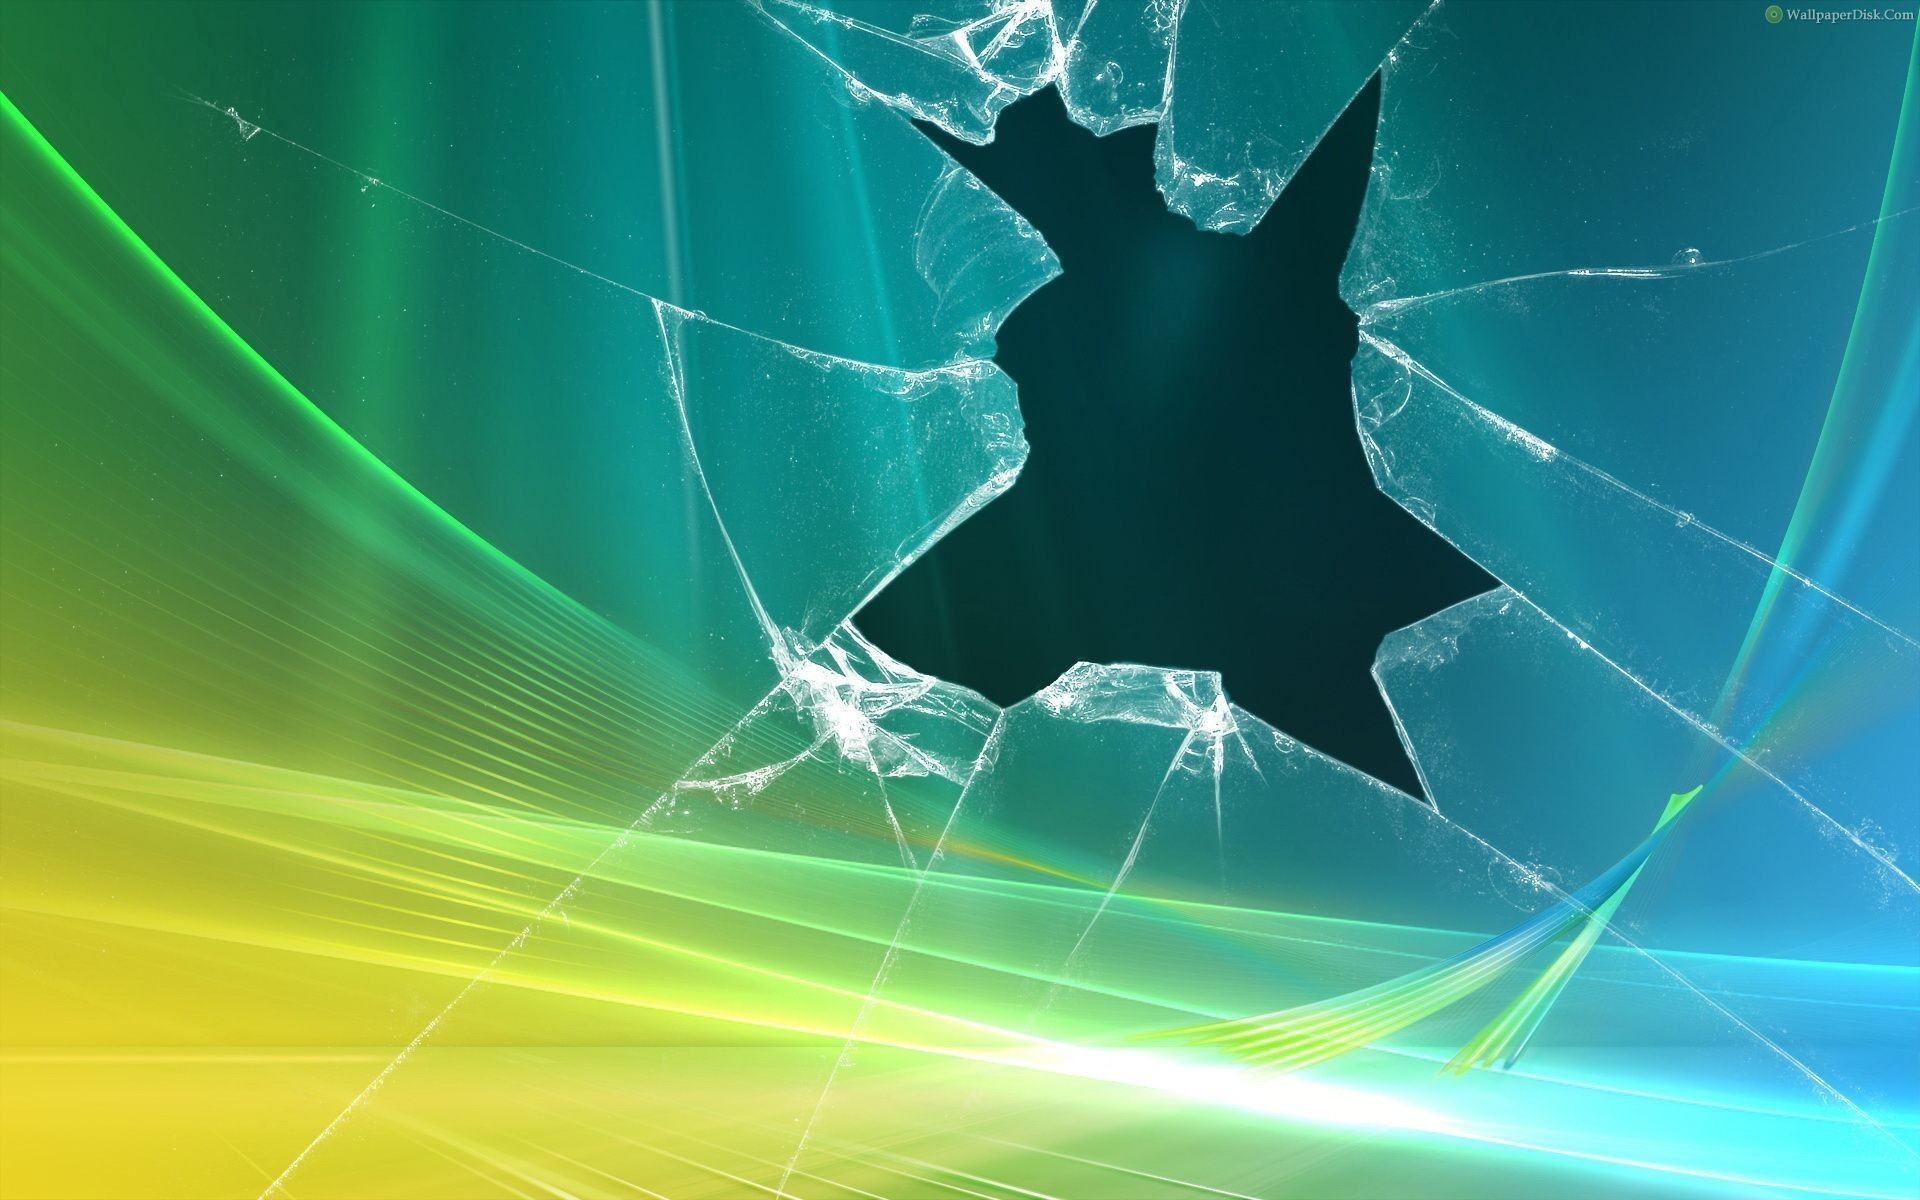 Windows 7 Cracked Screen Wallpaper 81 Images